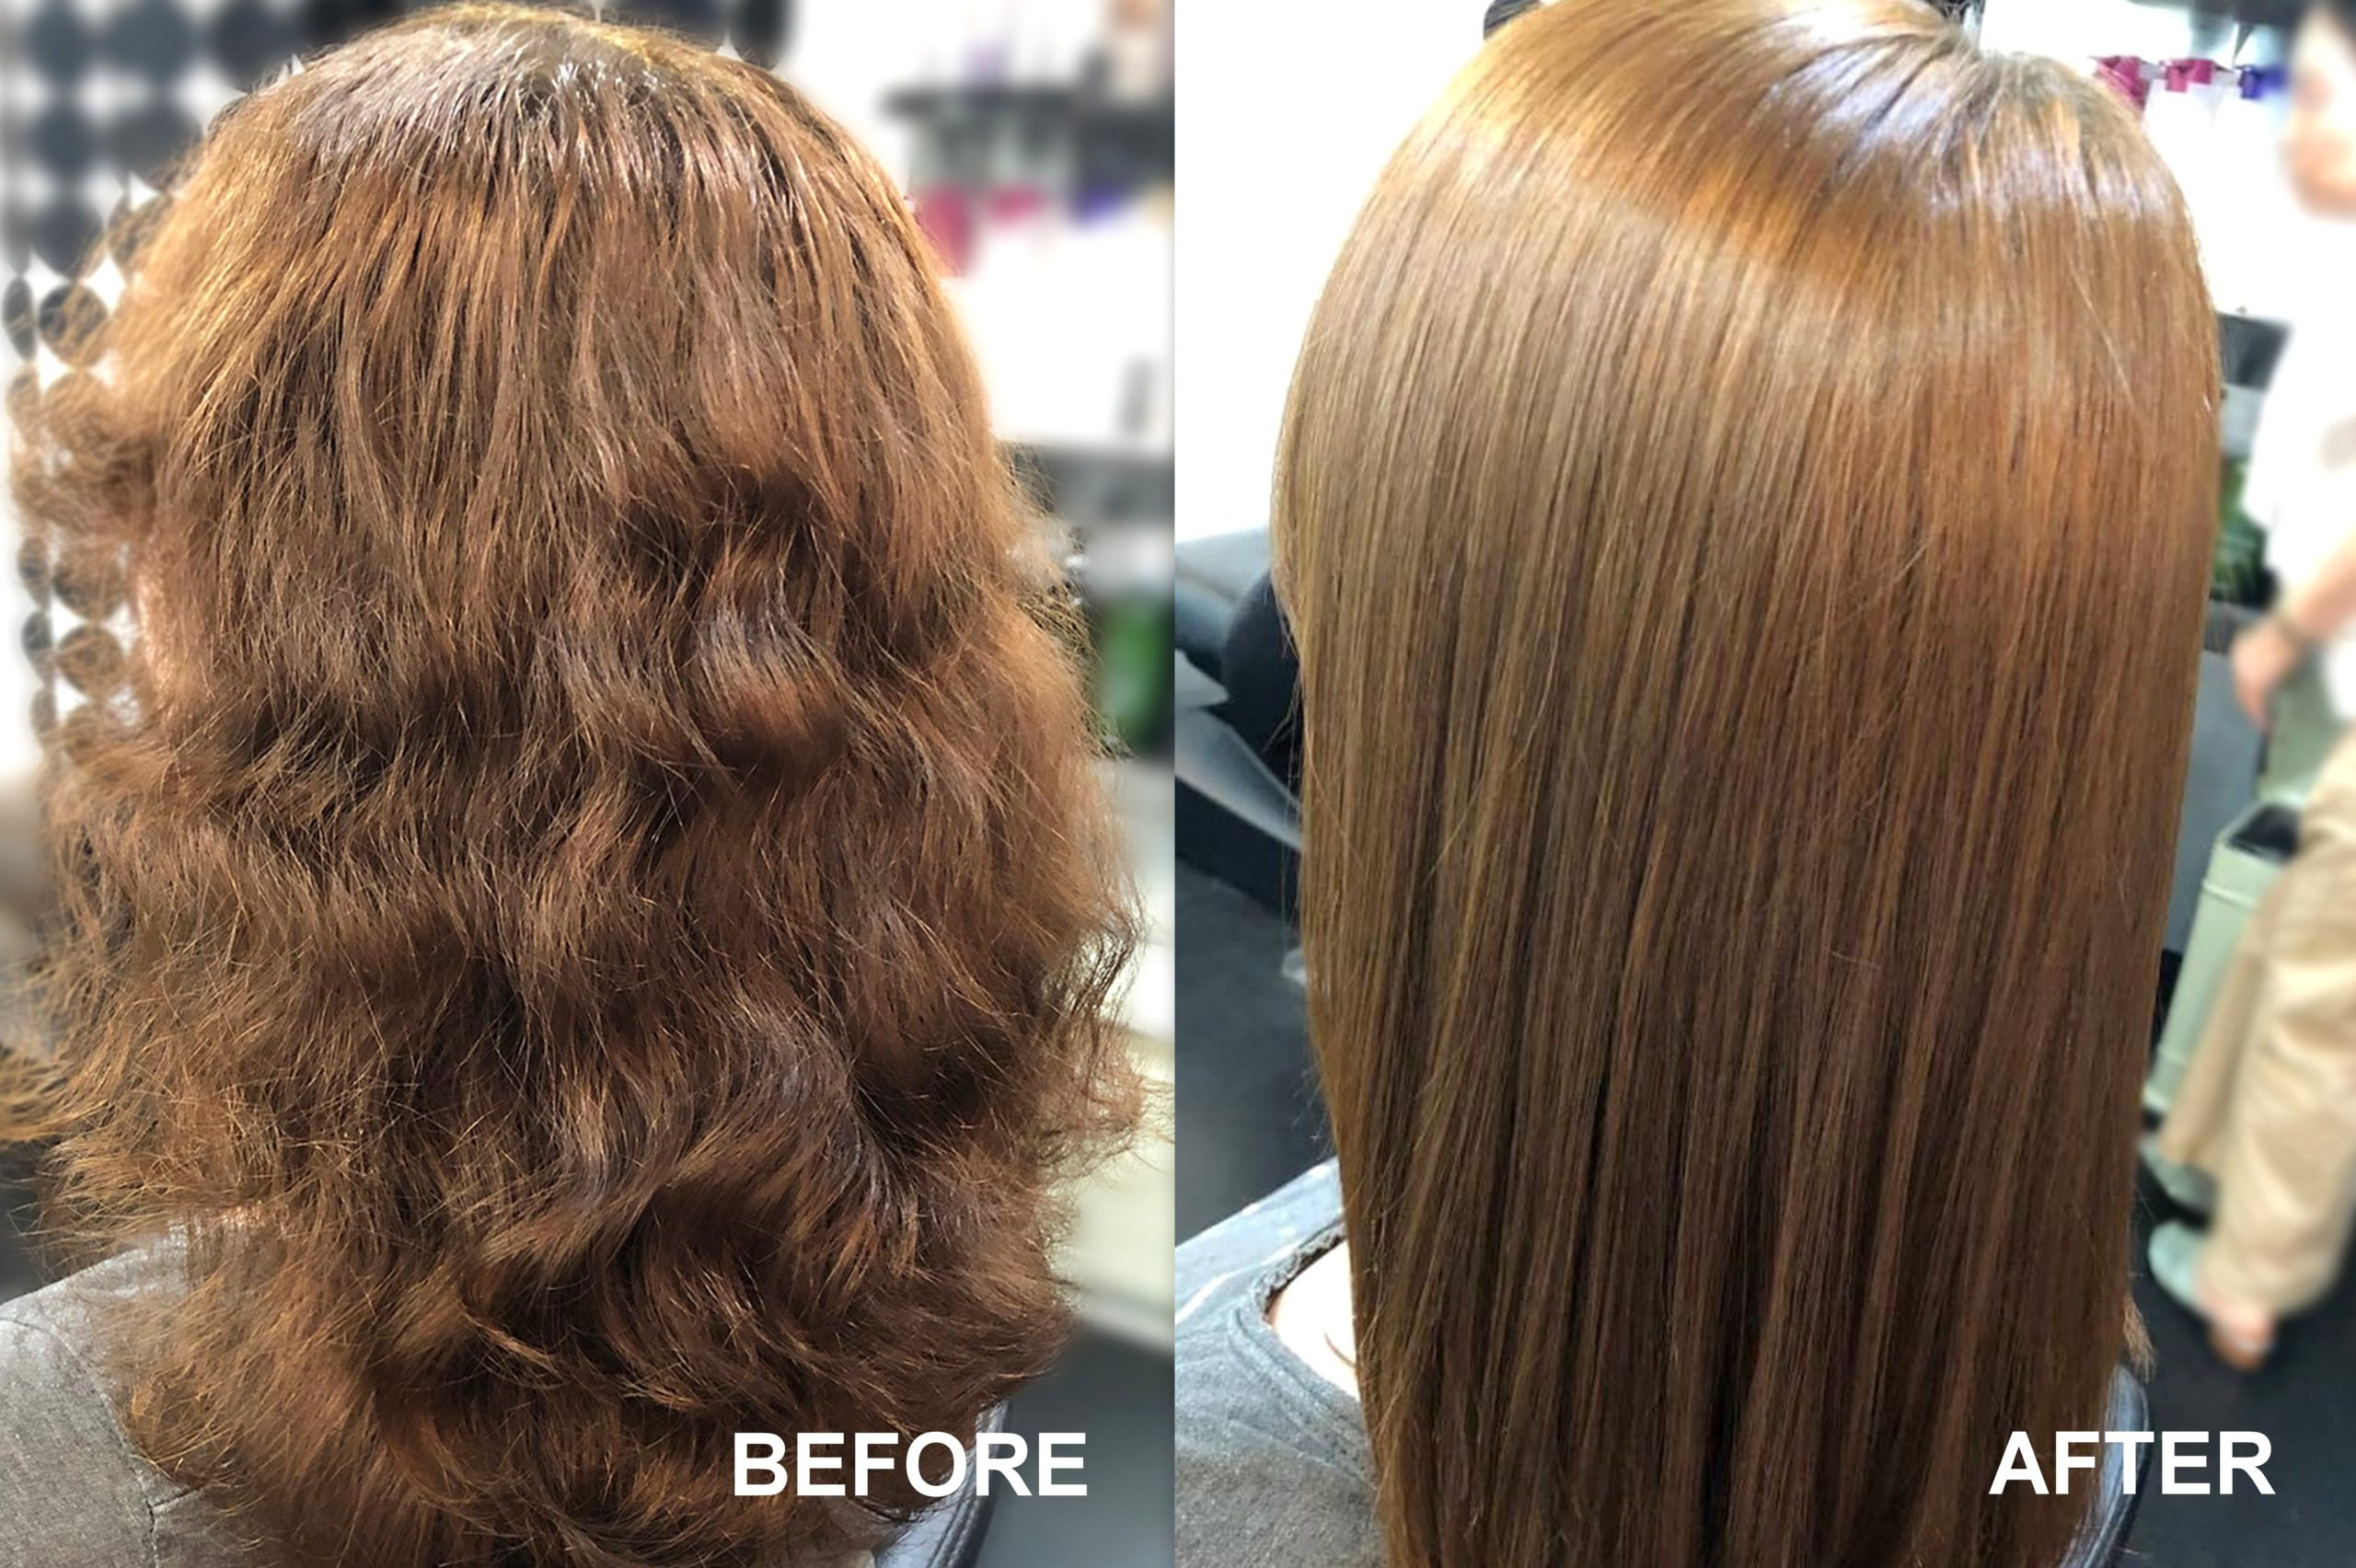 Special Offers for Keratin Treatment, Rebond, Brazillian at English-Speaking Hair Salons in Tokyo